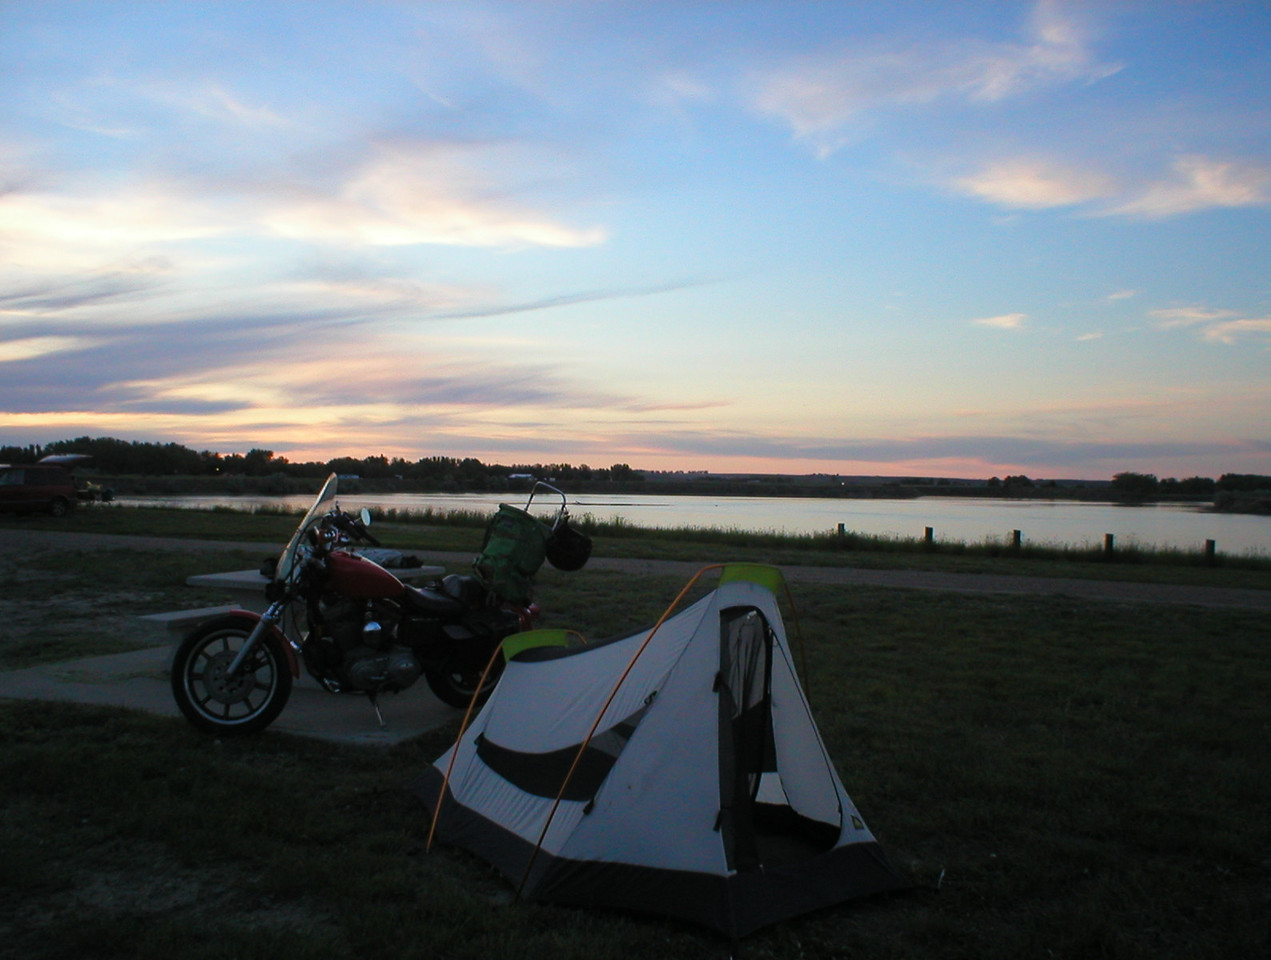 I make it to extreme northwestern North Dakota the second day and found an idyllic oasis in the middle of nowhere. I camped on the tip of a peninsula jetting out into a small lake. A couple blocks away are a few bait shops and bars. The camping is free here and the beer tasted good.